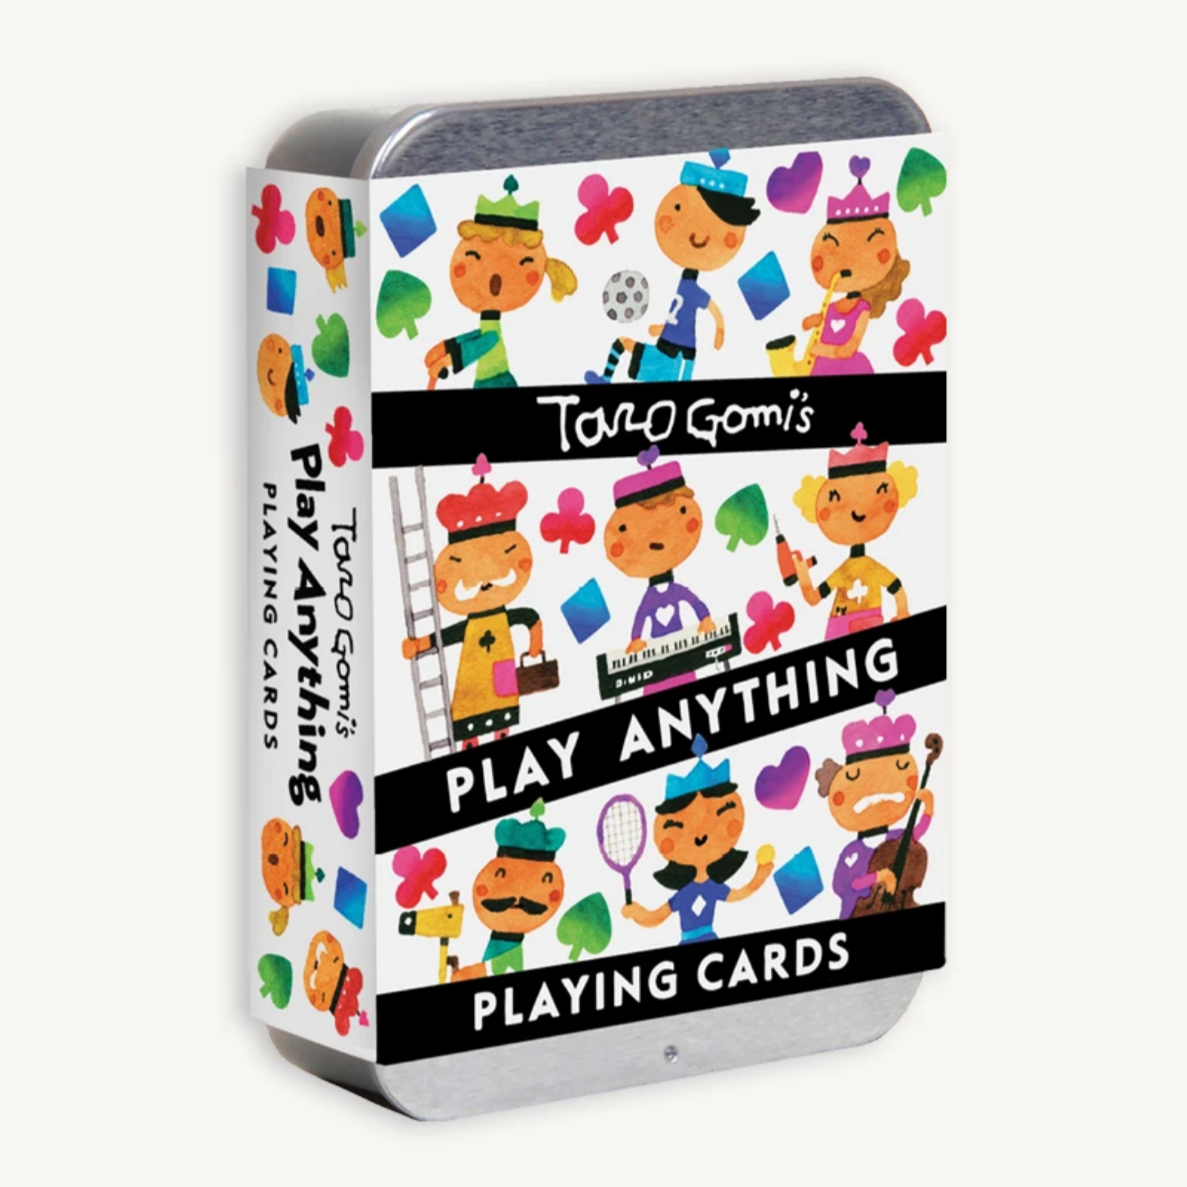 Play Anything Playing Cards by Taro Gomi